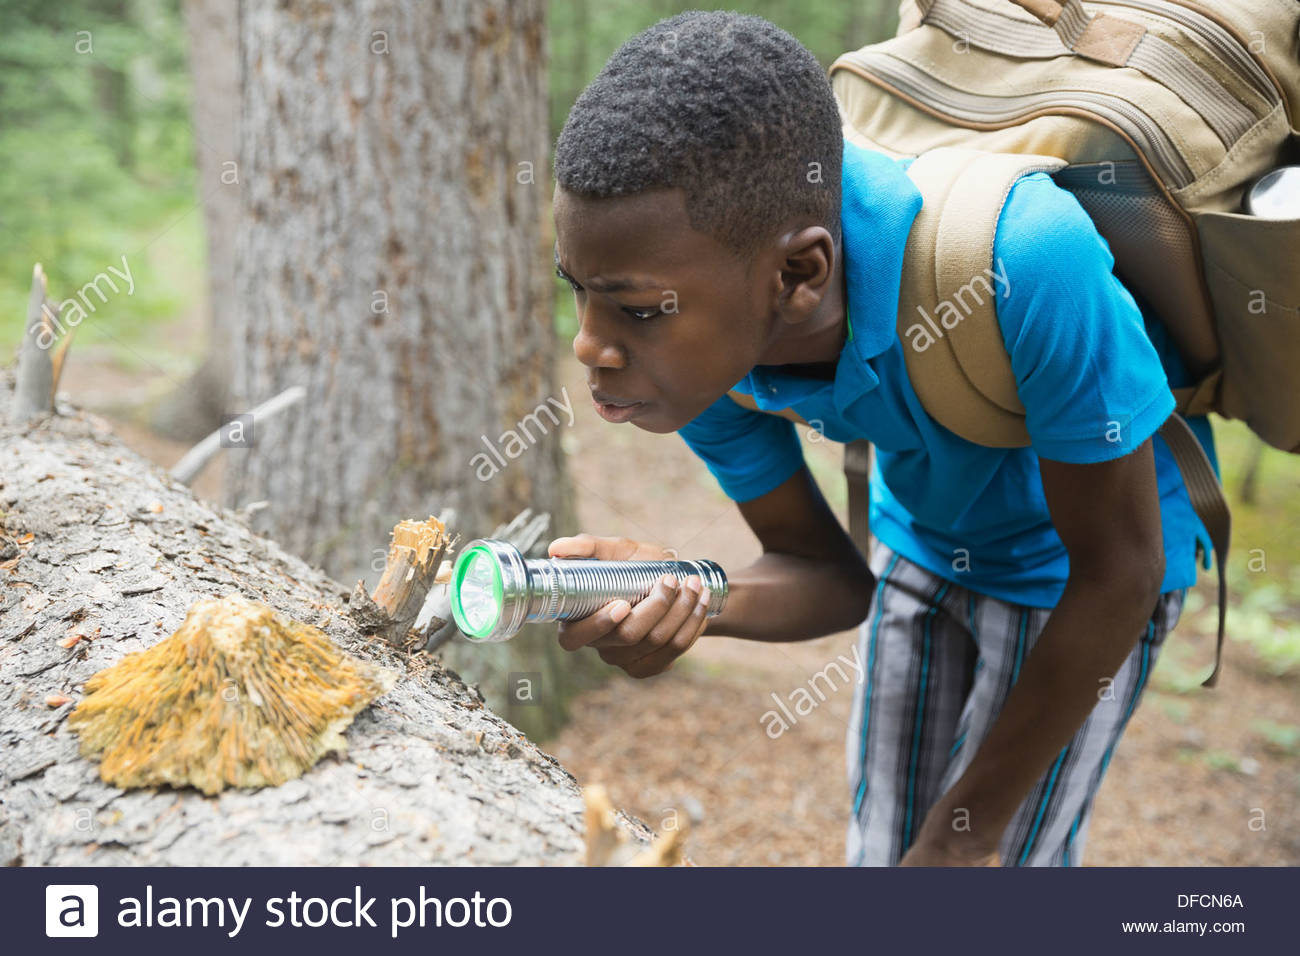 Boy examining fungus on tree trunk in forest Stock Photo